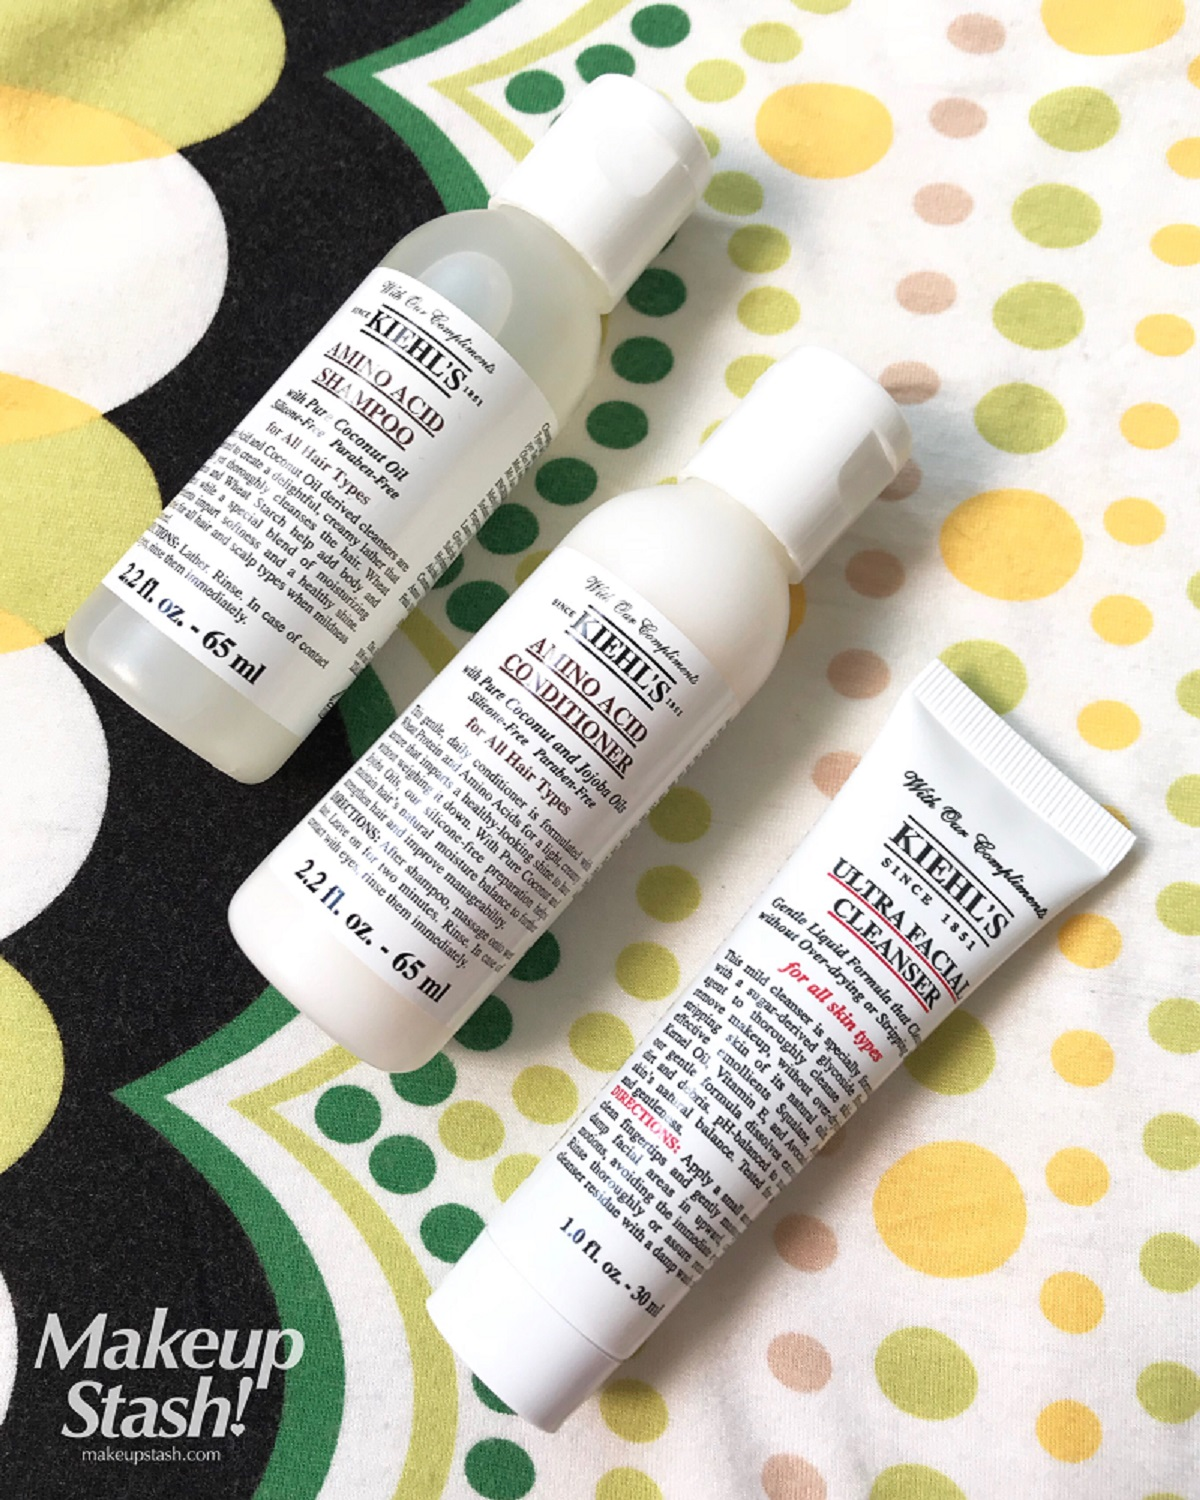 Kiehls Amino Acid Conditioner